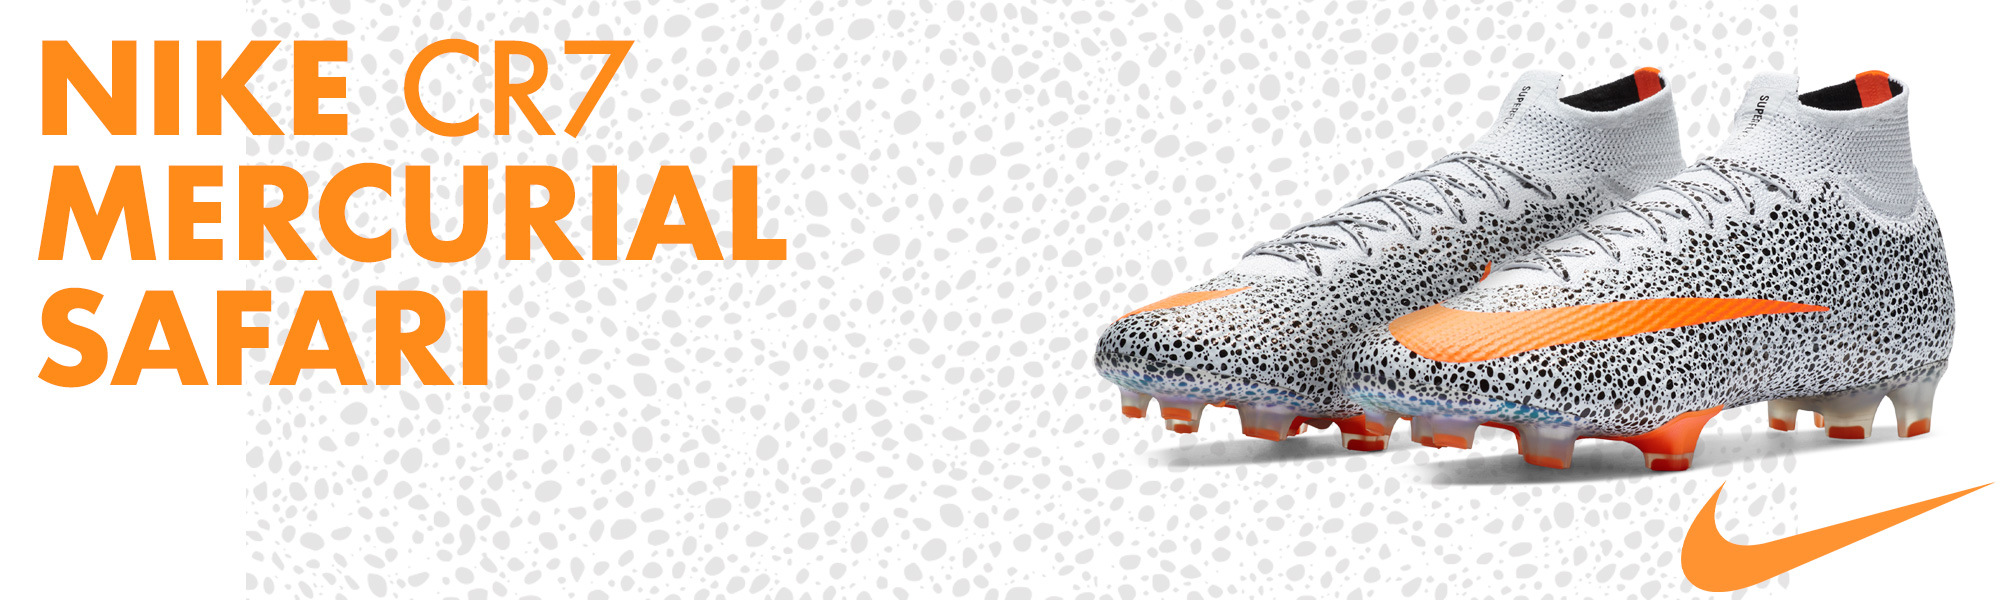 Nike Cr7 Cleats Buy Your Cristiano Ronaldo Cleats From Soccerpro